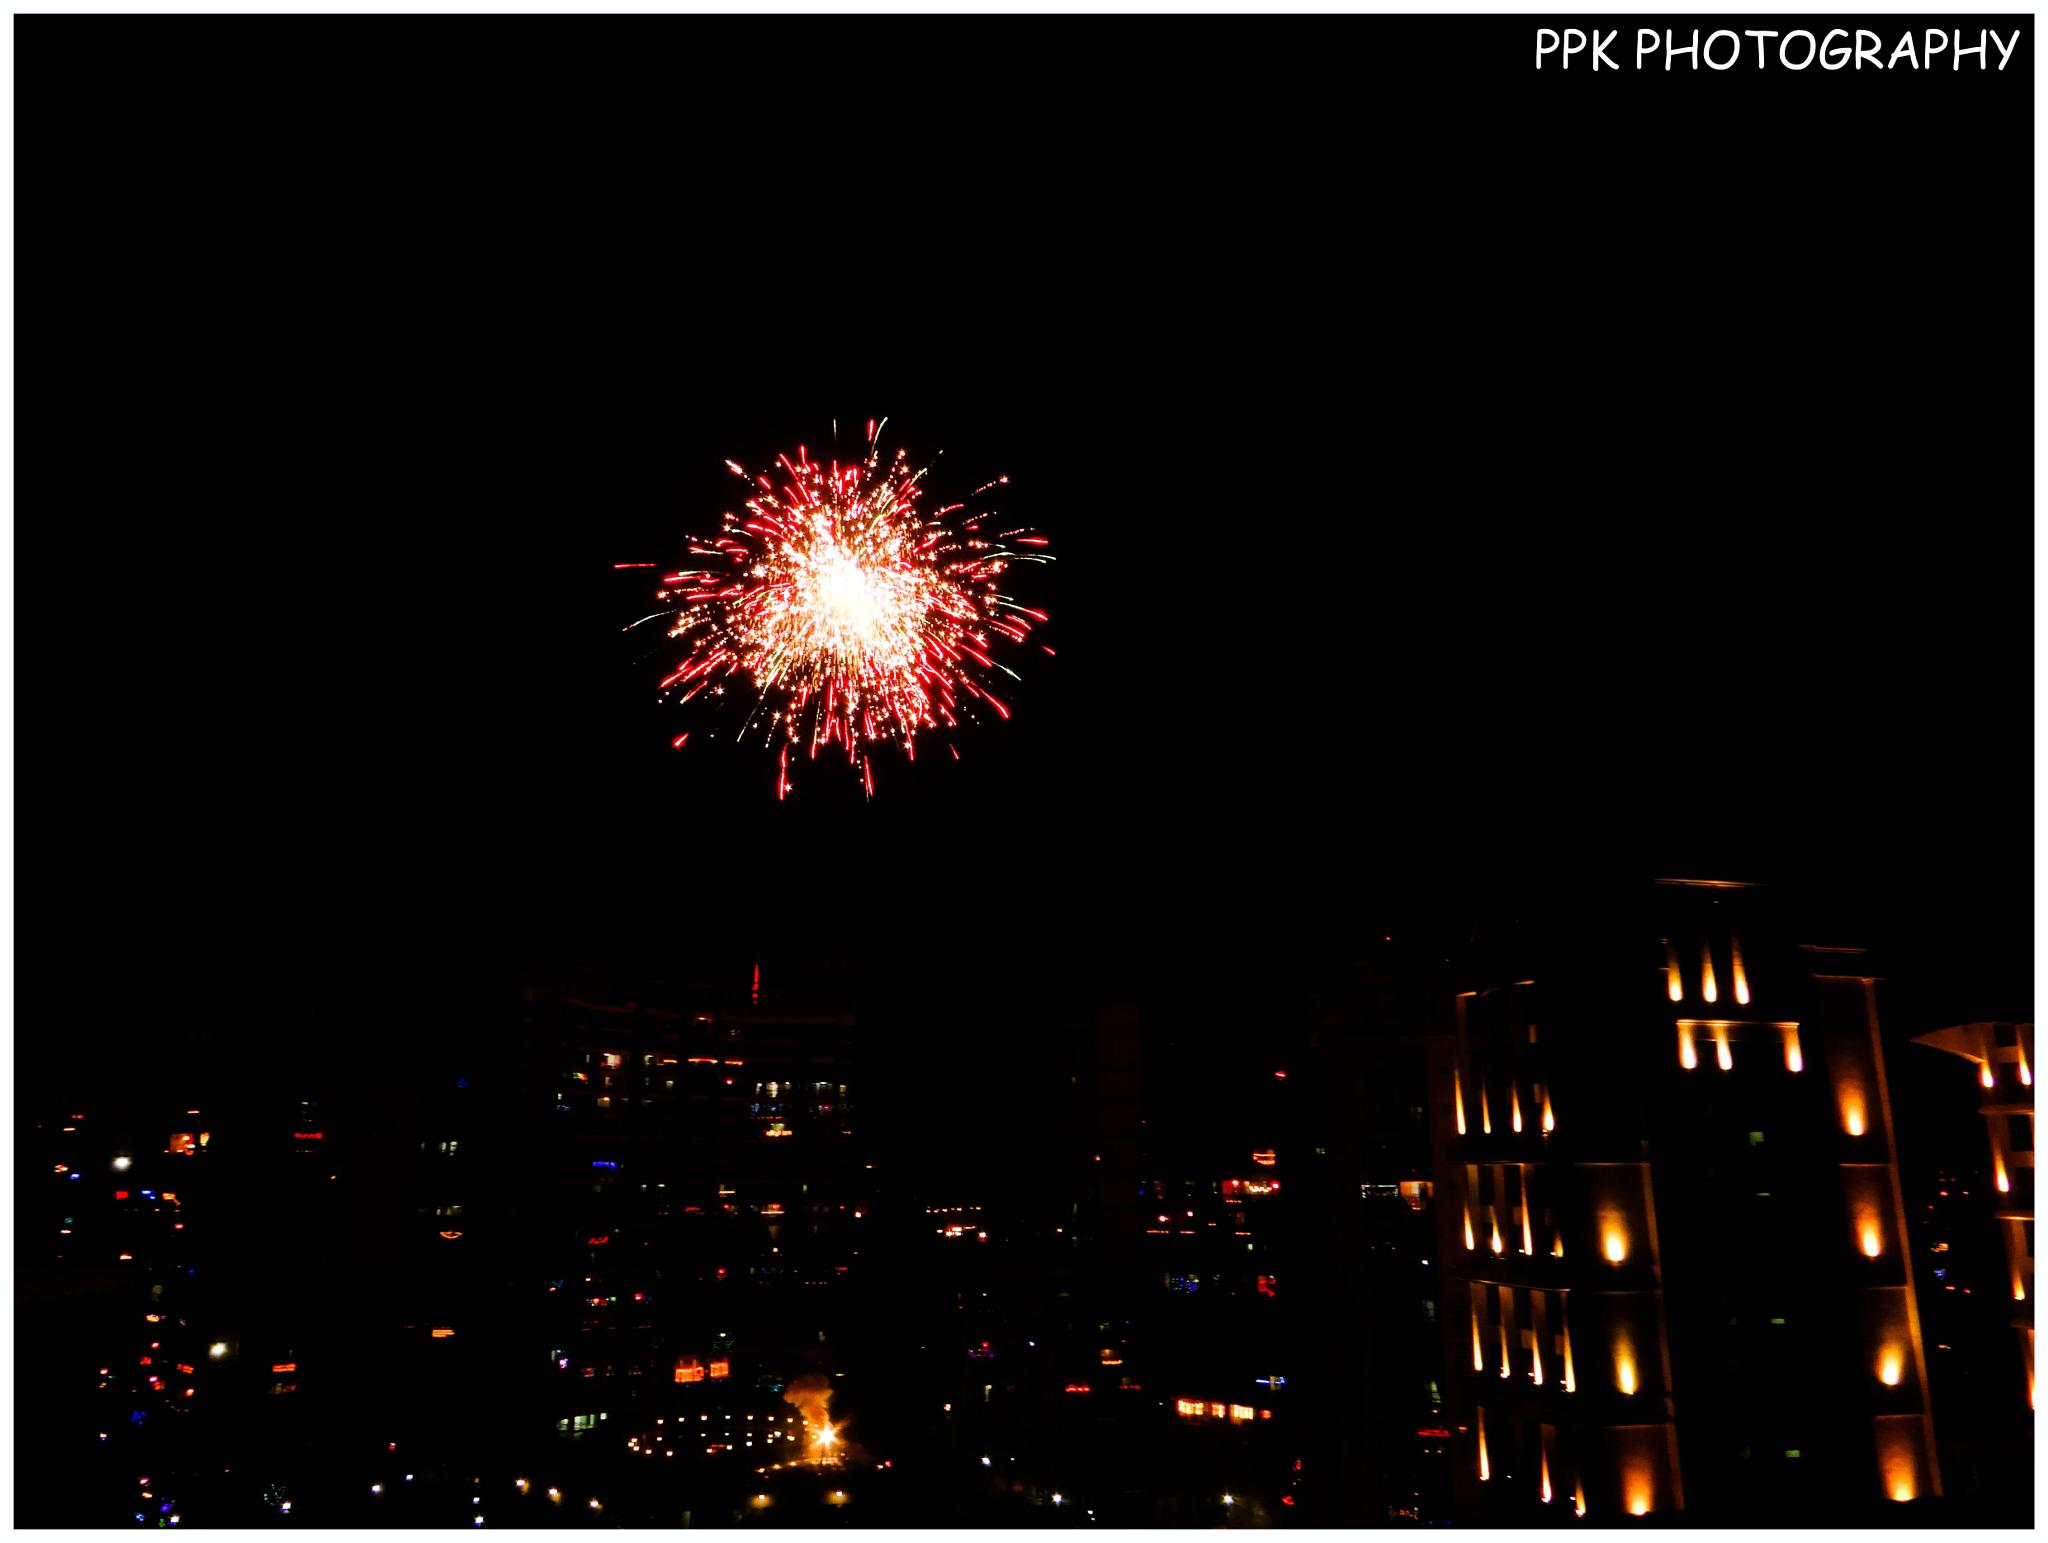 """""""FIREWORK"""" by PPK PHOTOGRAPHY"""